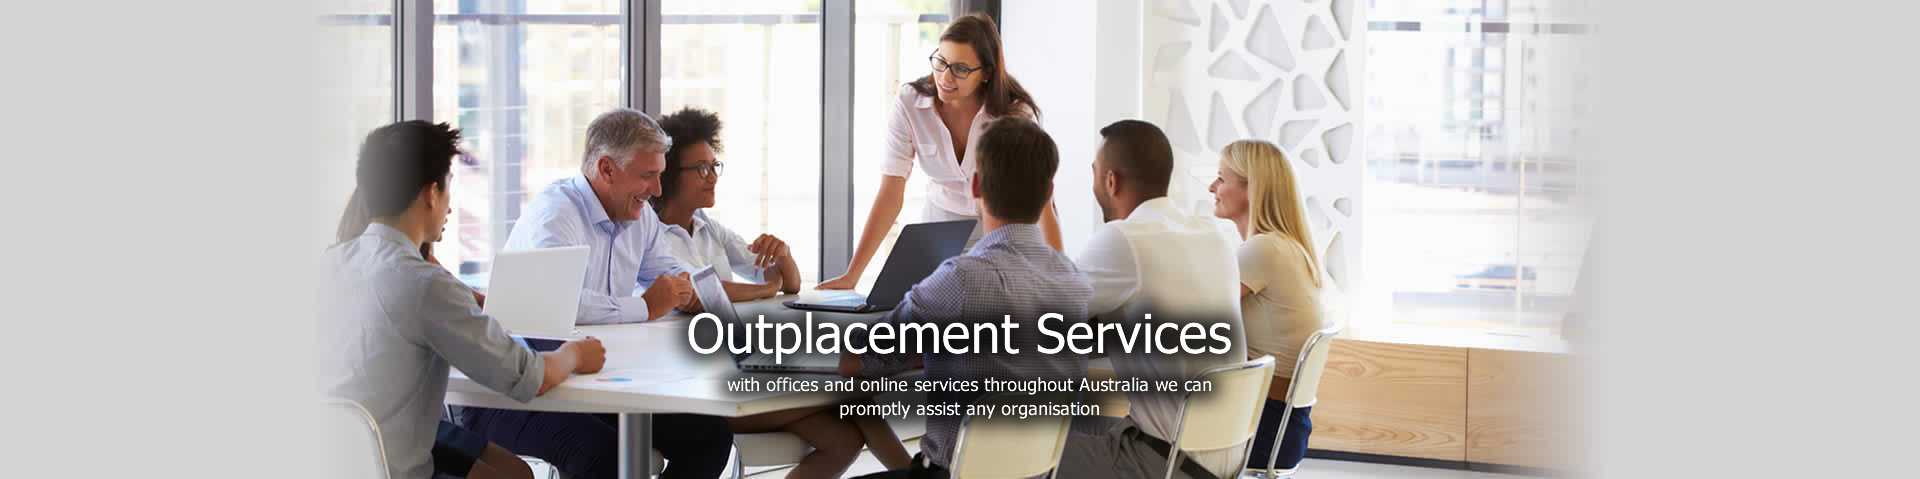 Corporate Outplacement Services